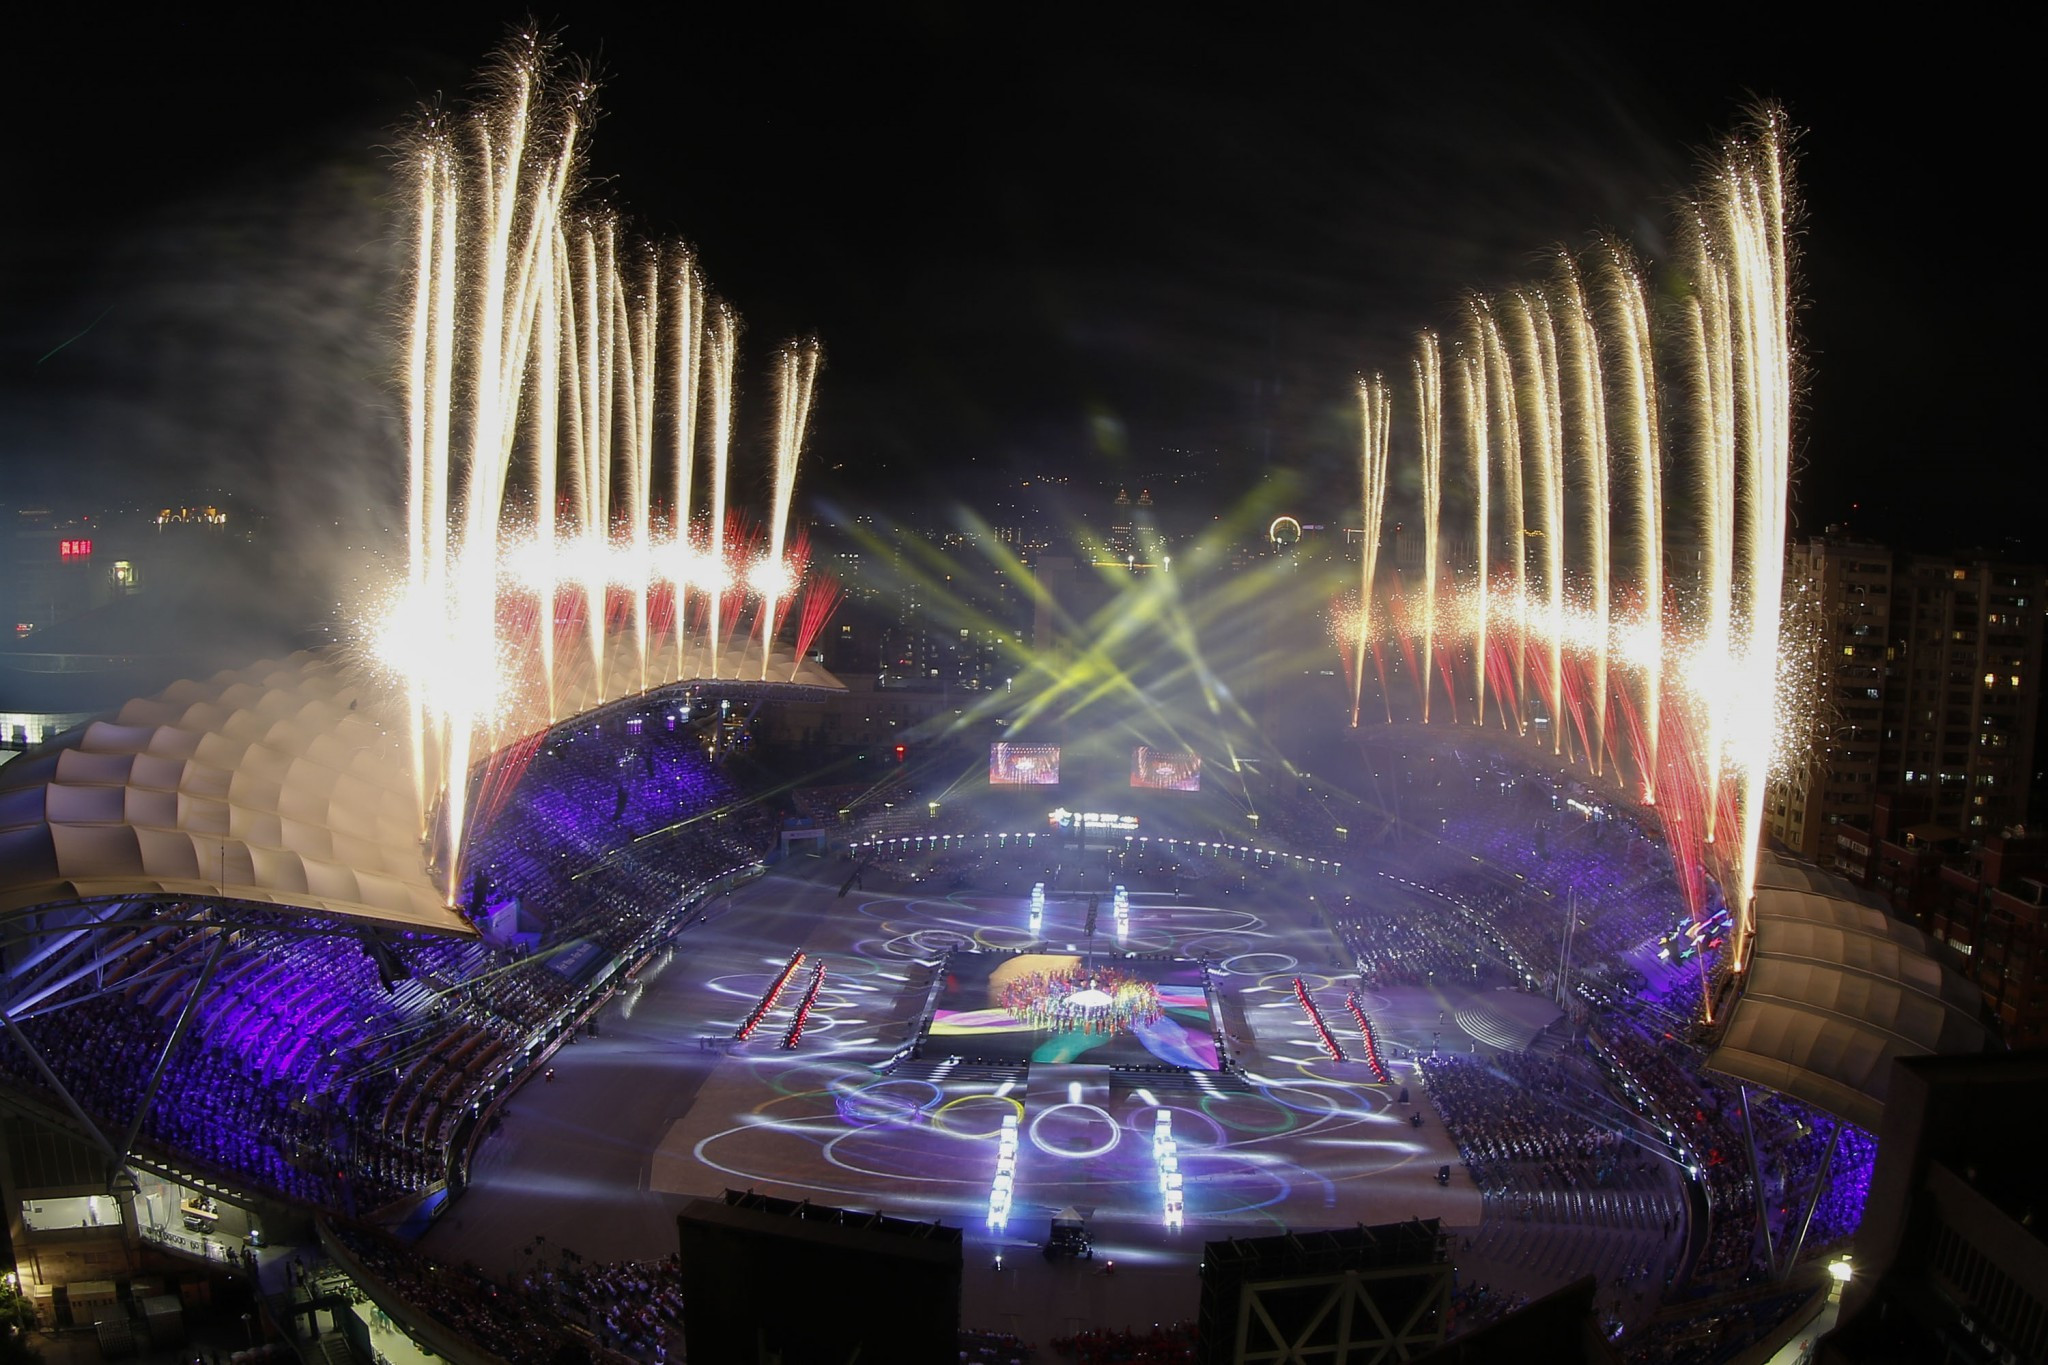 Tomorrow's Ceremony will conclude with an array of fireworks ©Taipei 2017